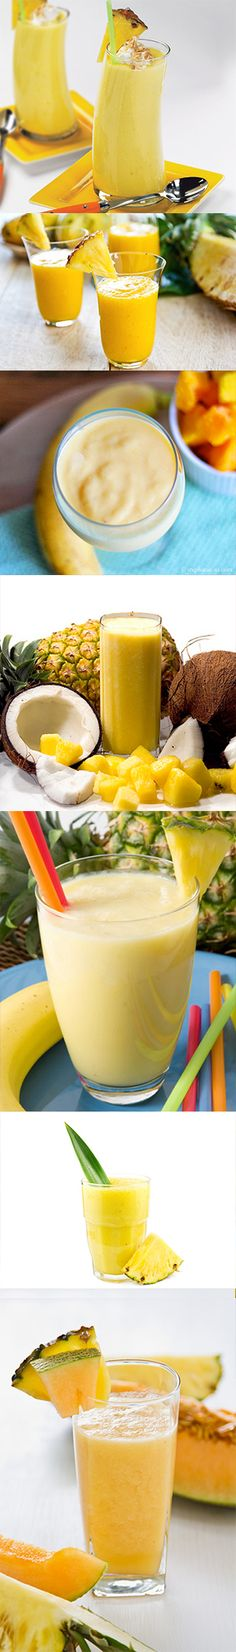 7 Awesome Healthy PINEAPPLE Smoothie Recipes